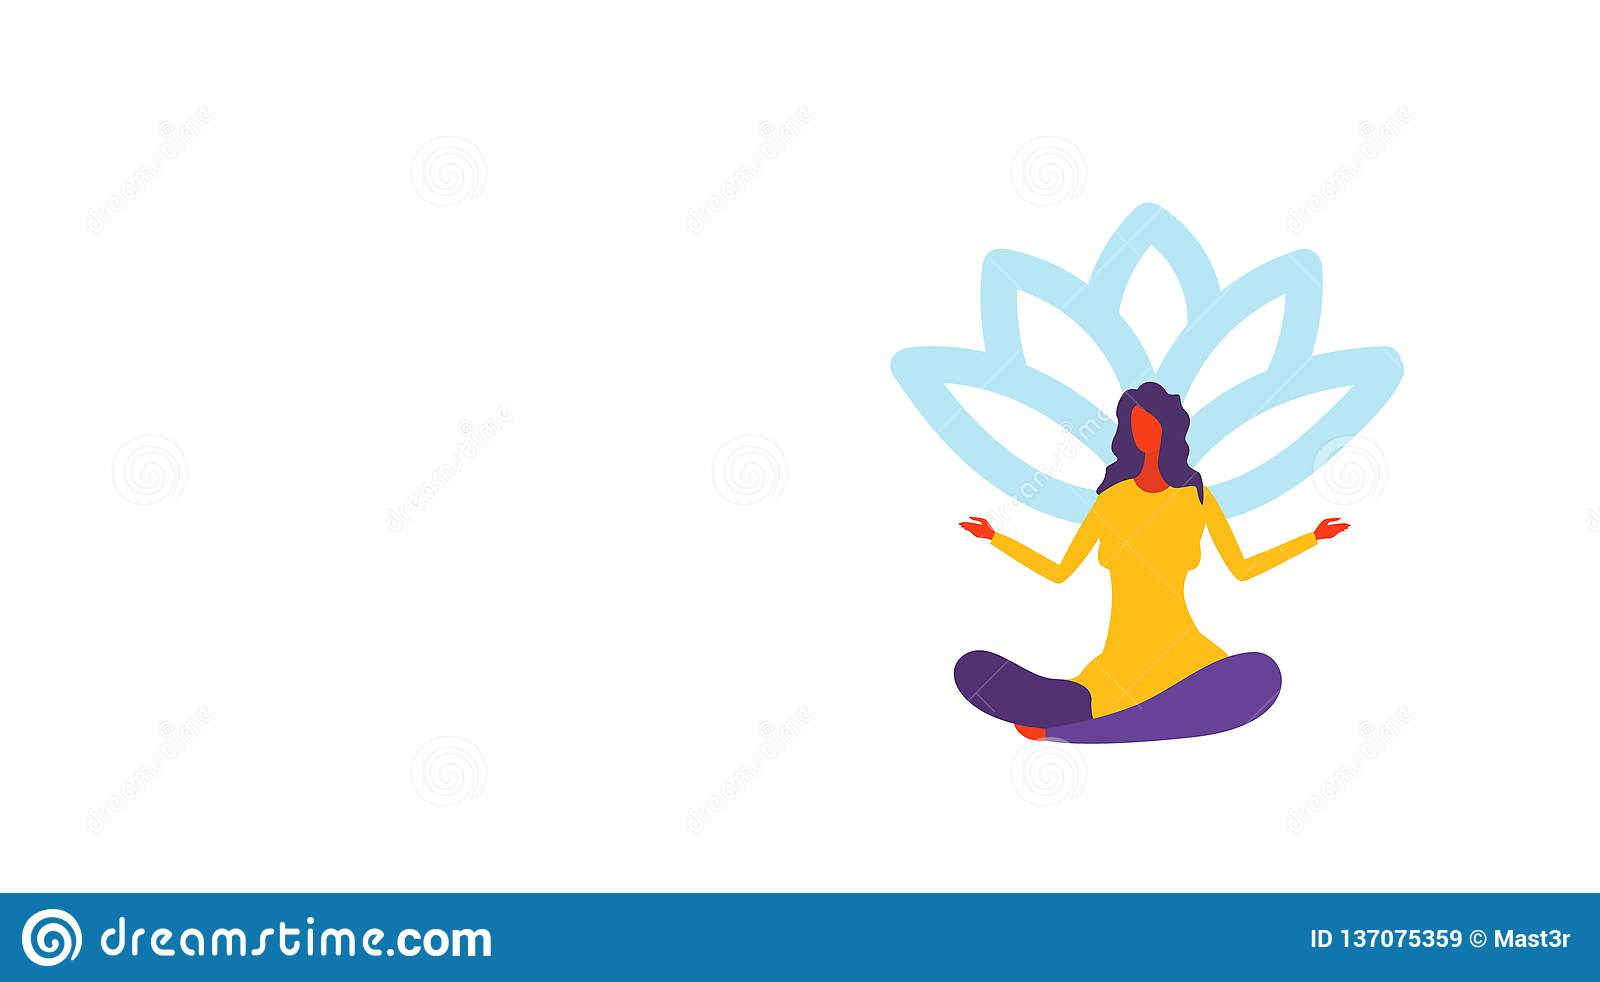 Businesswoman Meditating Sitting Lotus Position Girl In Yoga Pose Female Cartoon Character Full Length Horizontal Stock Vector Illustration Of Business Concentration 137075359